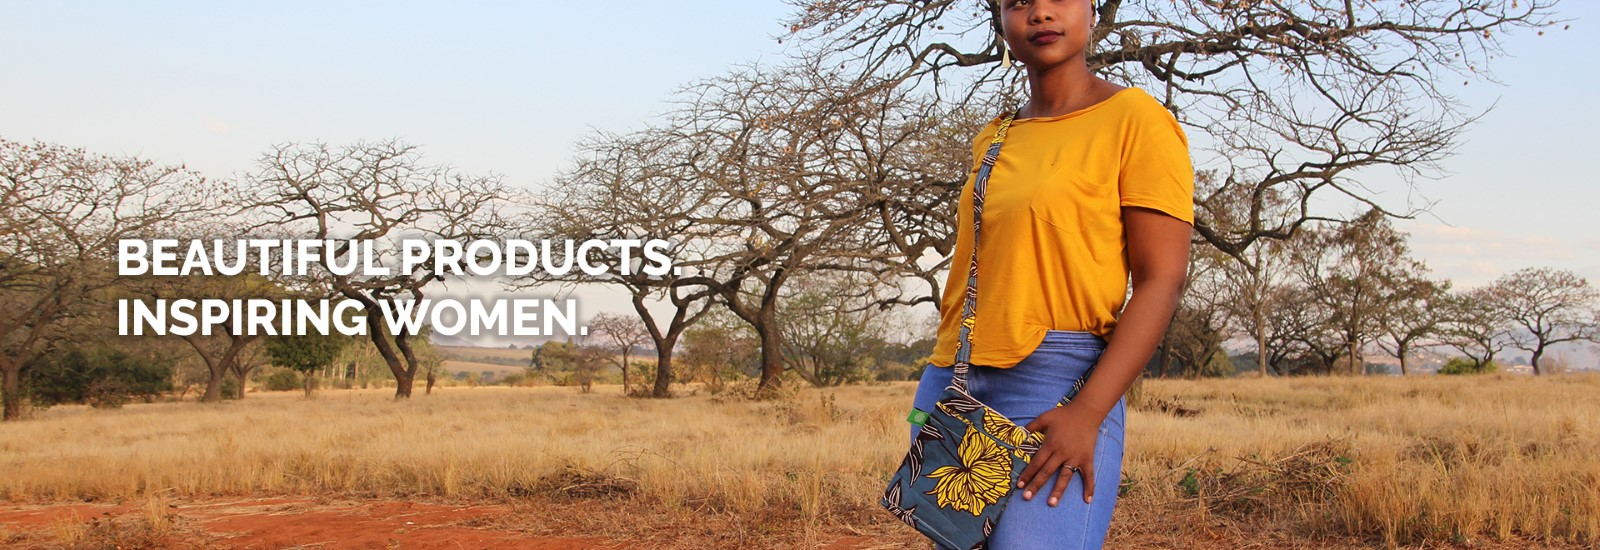 Beautiful Products... Inspiring Women